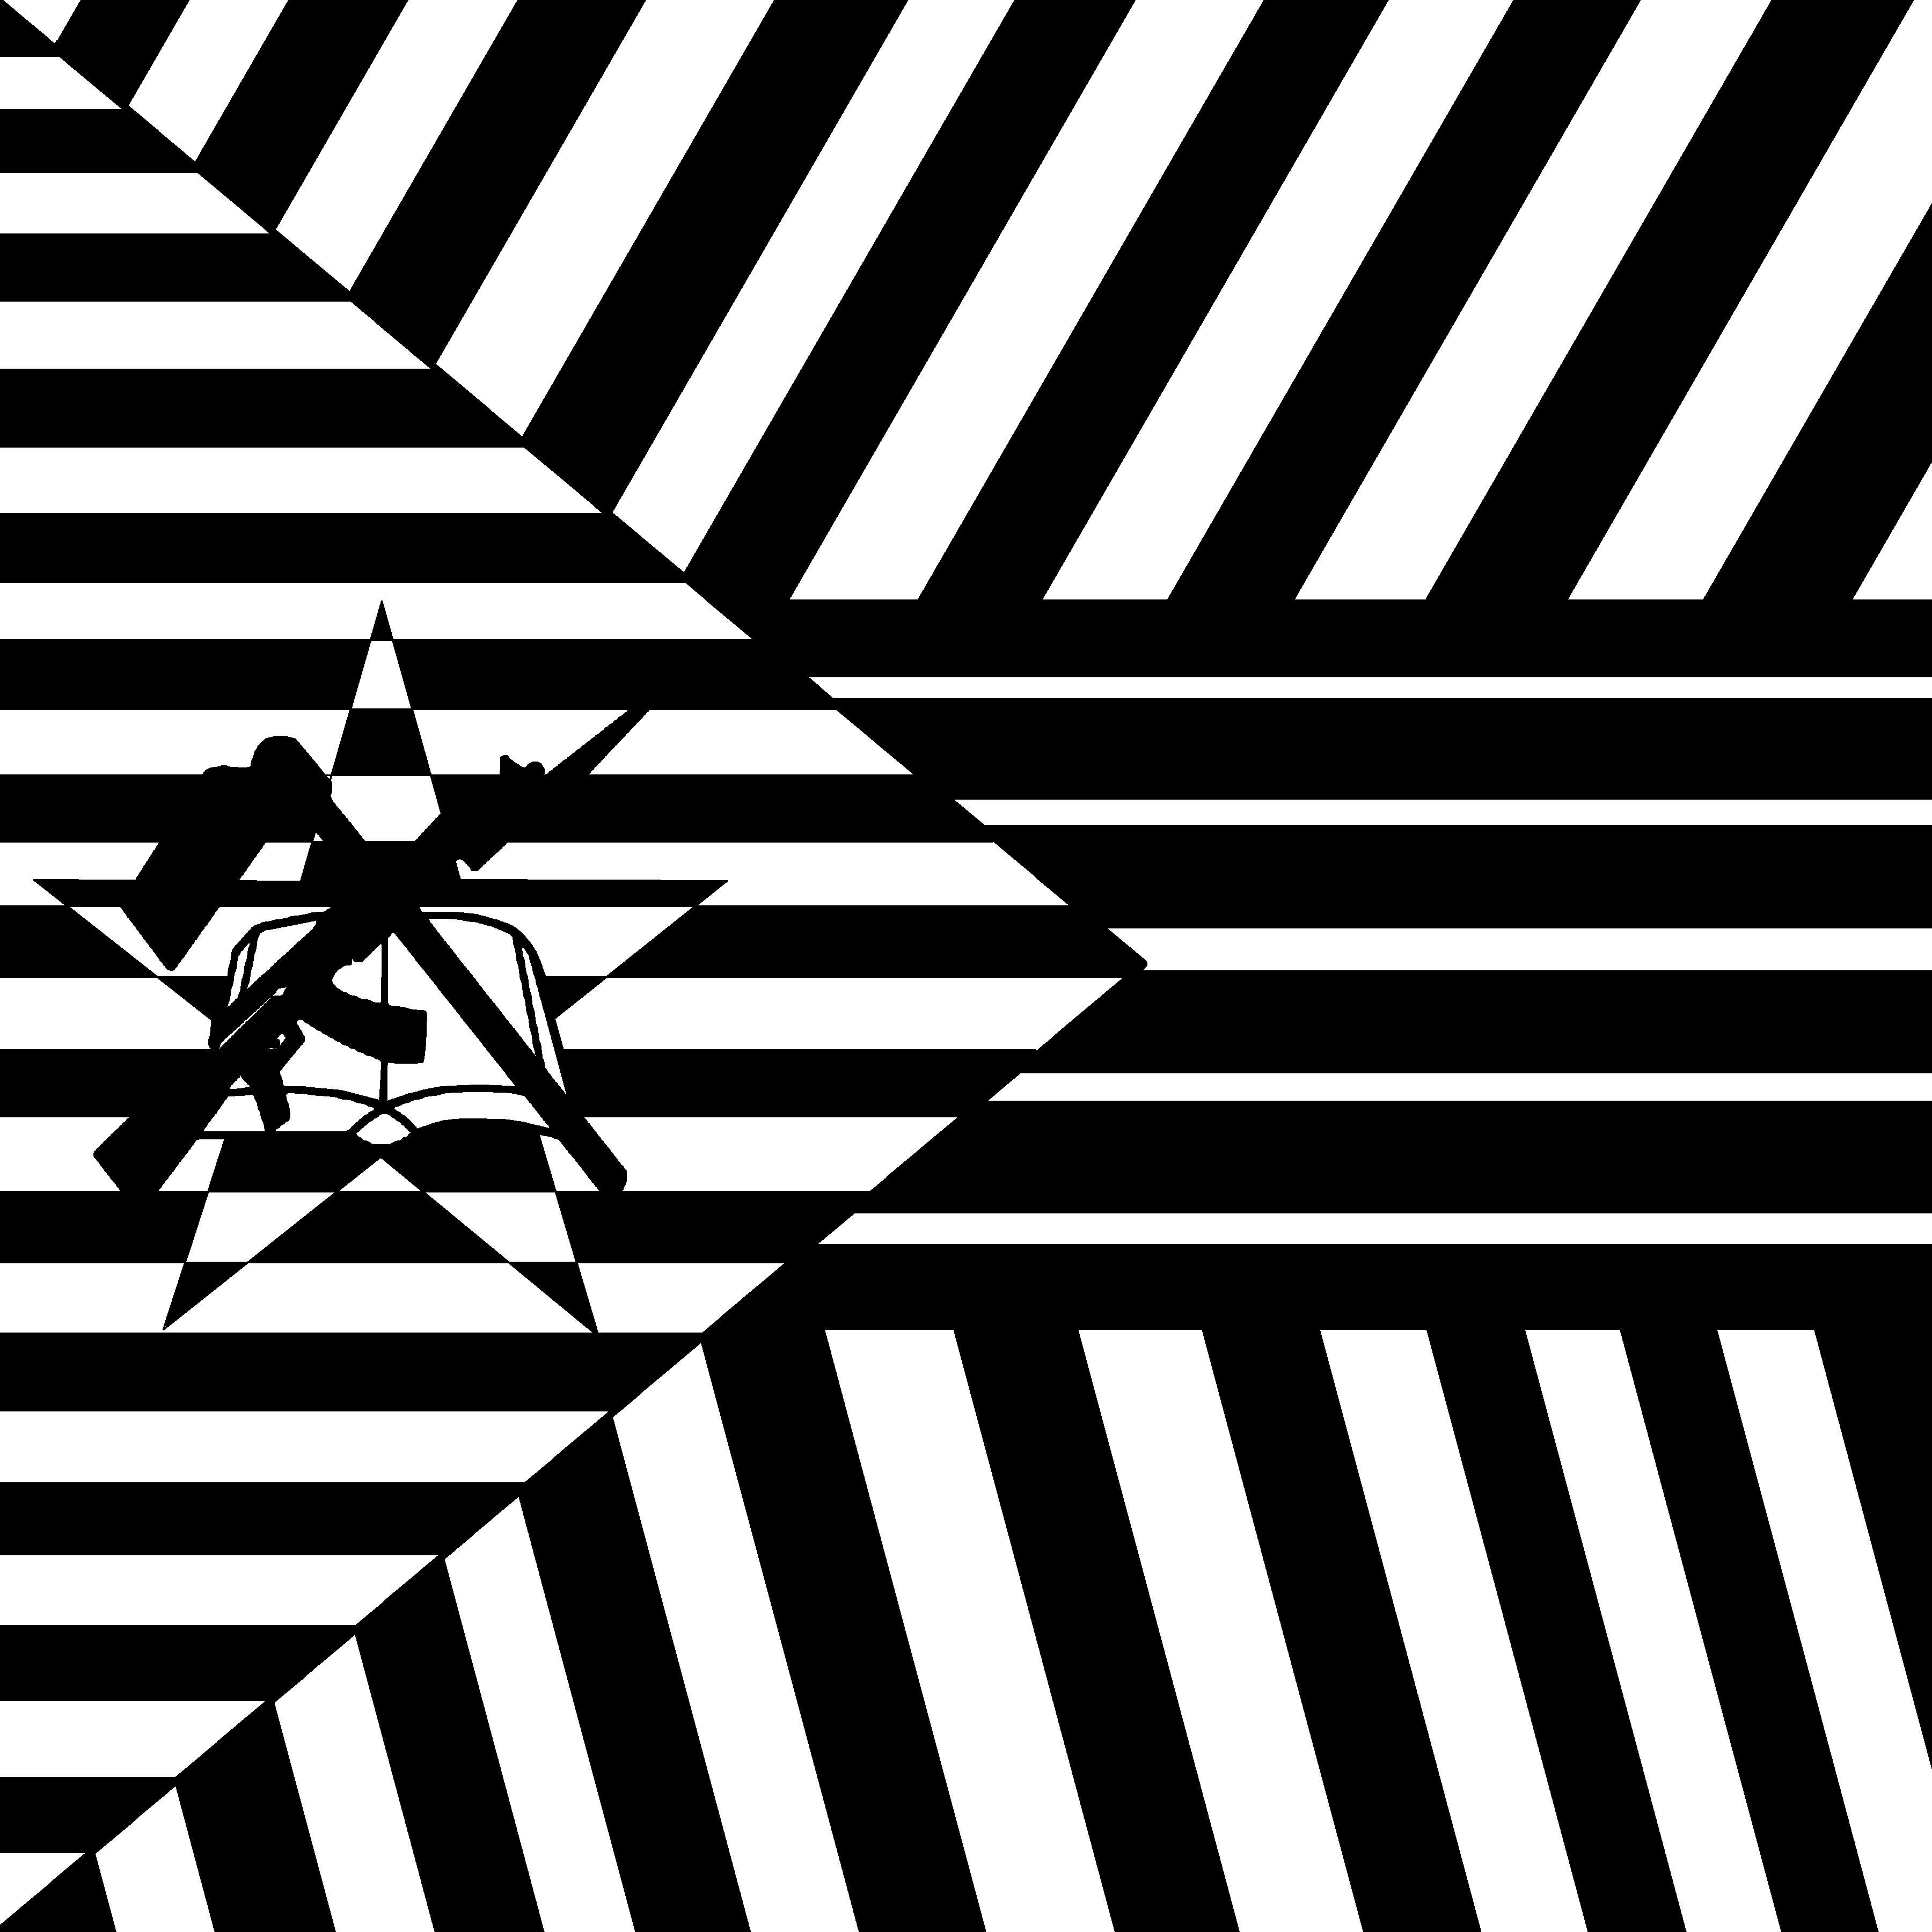 Drawn contrast White High art flag Contrast